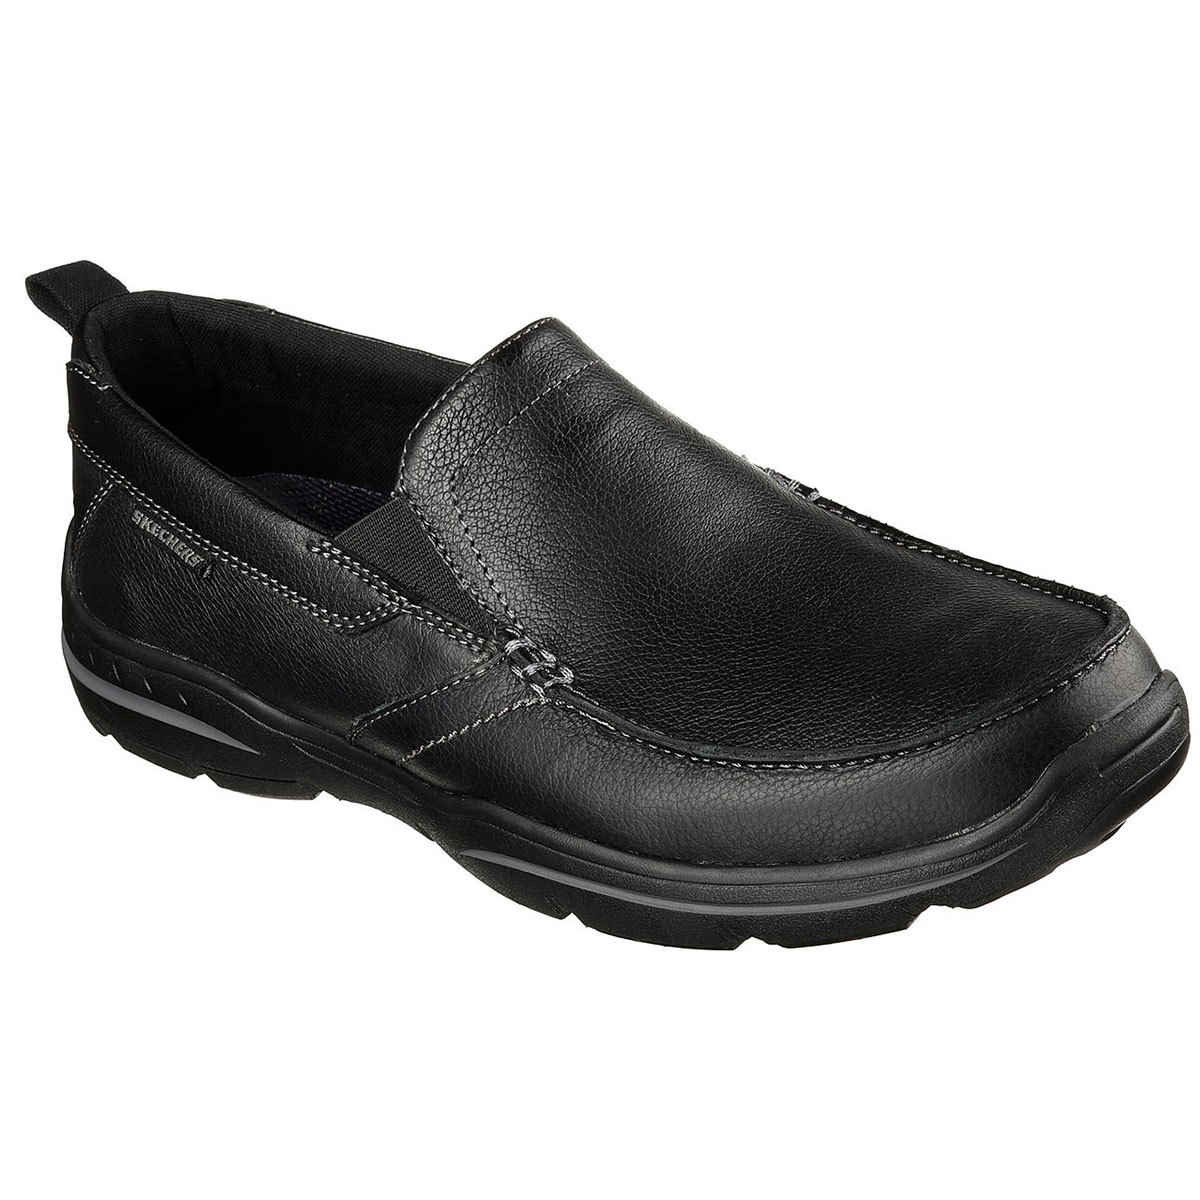 "Skechers Men's Relaxed Fit: Harper A "" Forde Casual Slip-On Shoes - Black, 9.5"